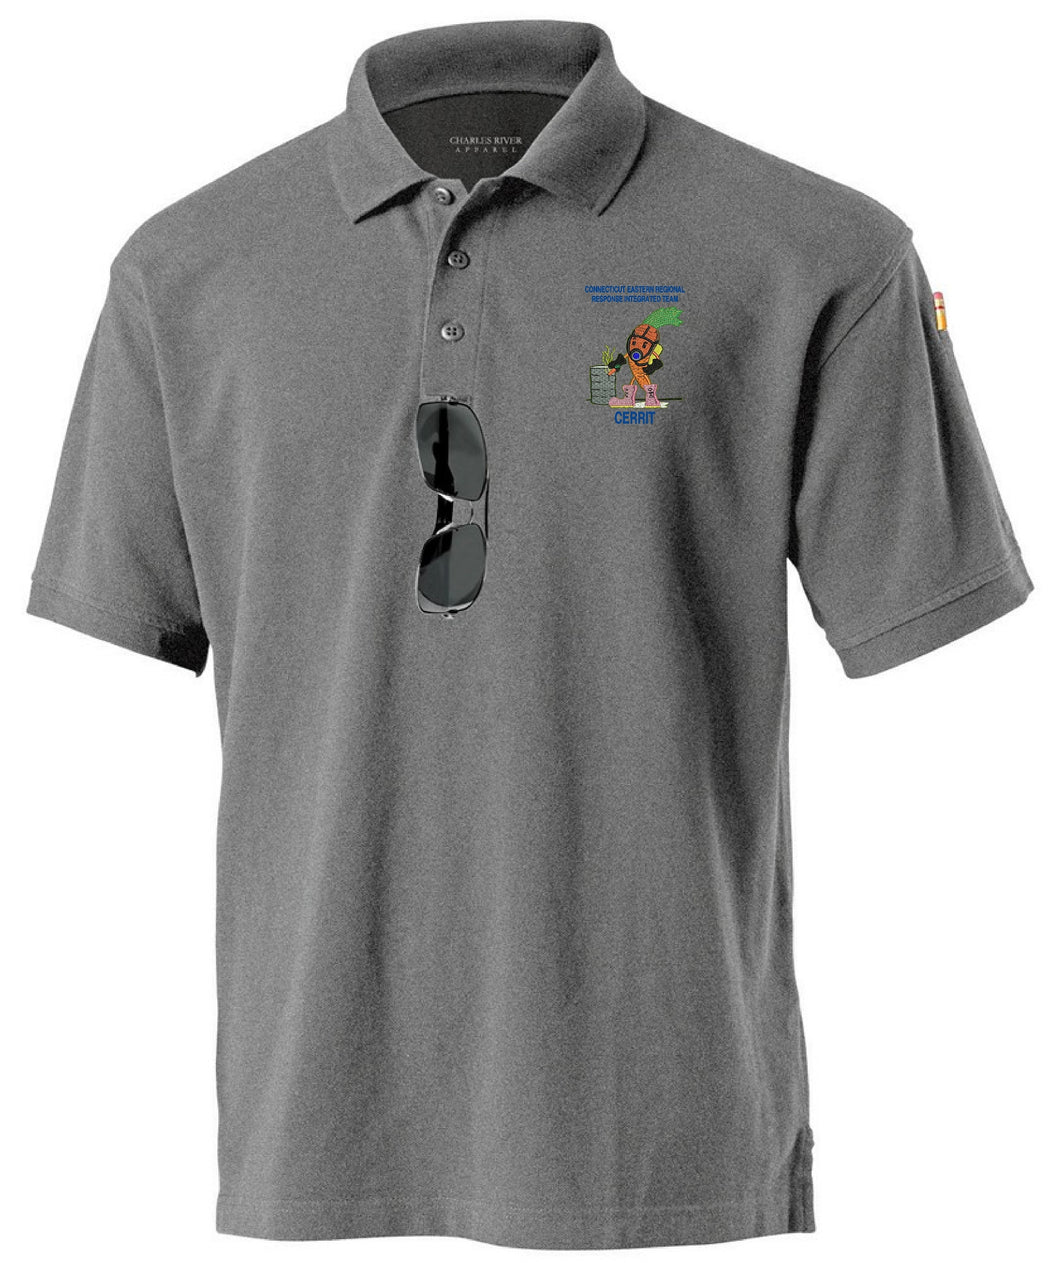 Men's Allegiance Polo with Embroidered logo Left chest CR 3045